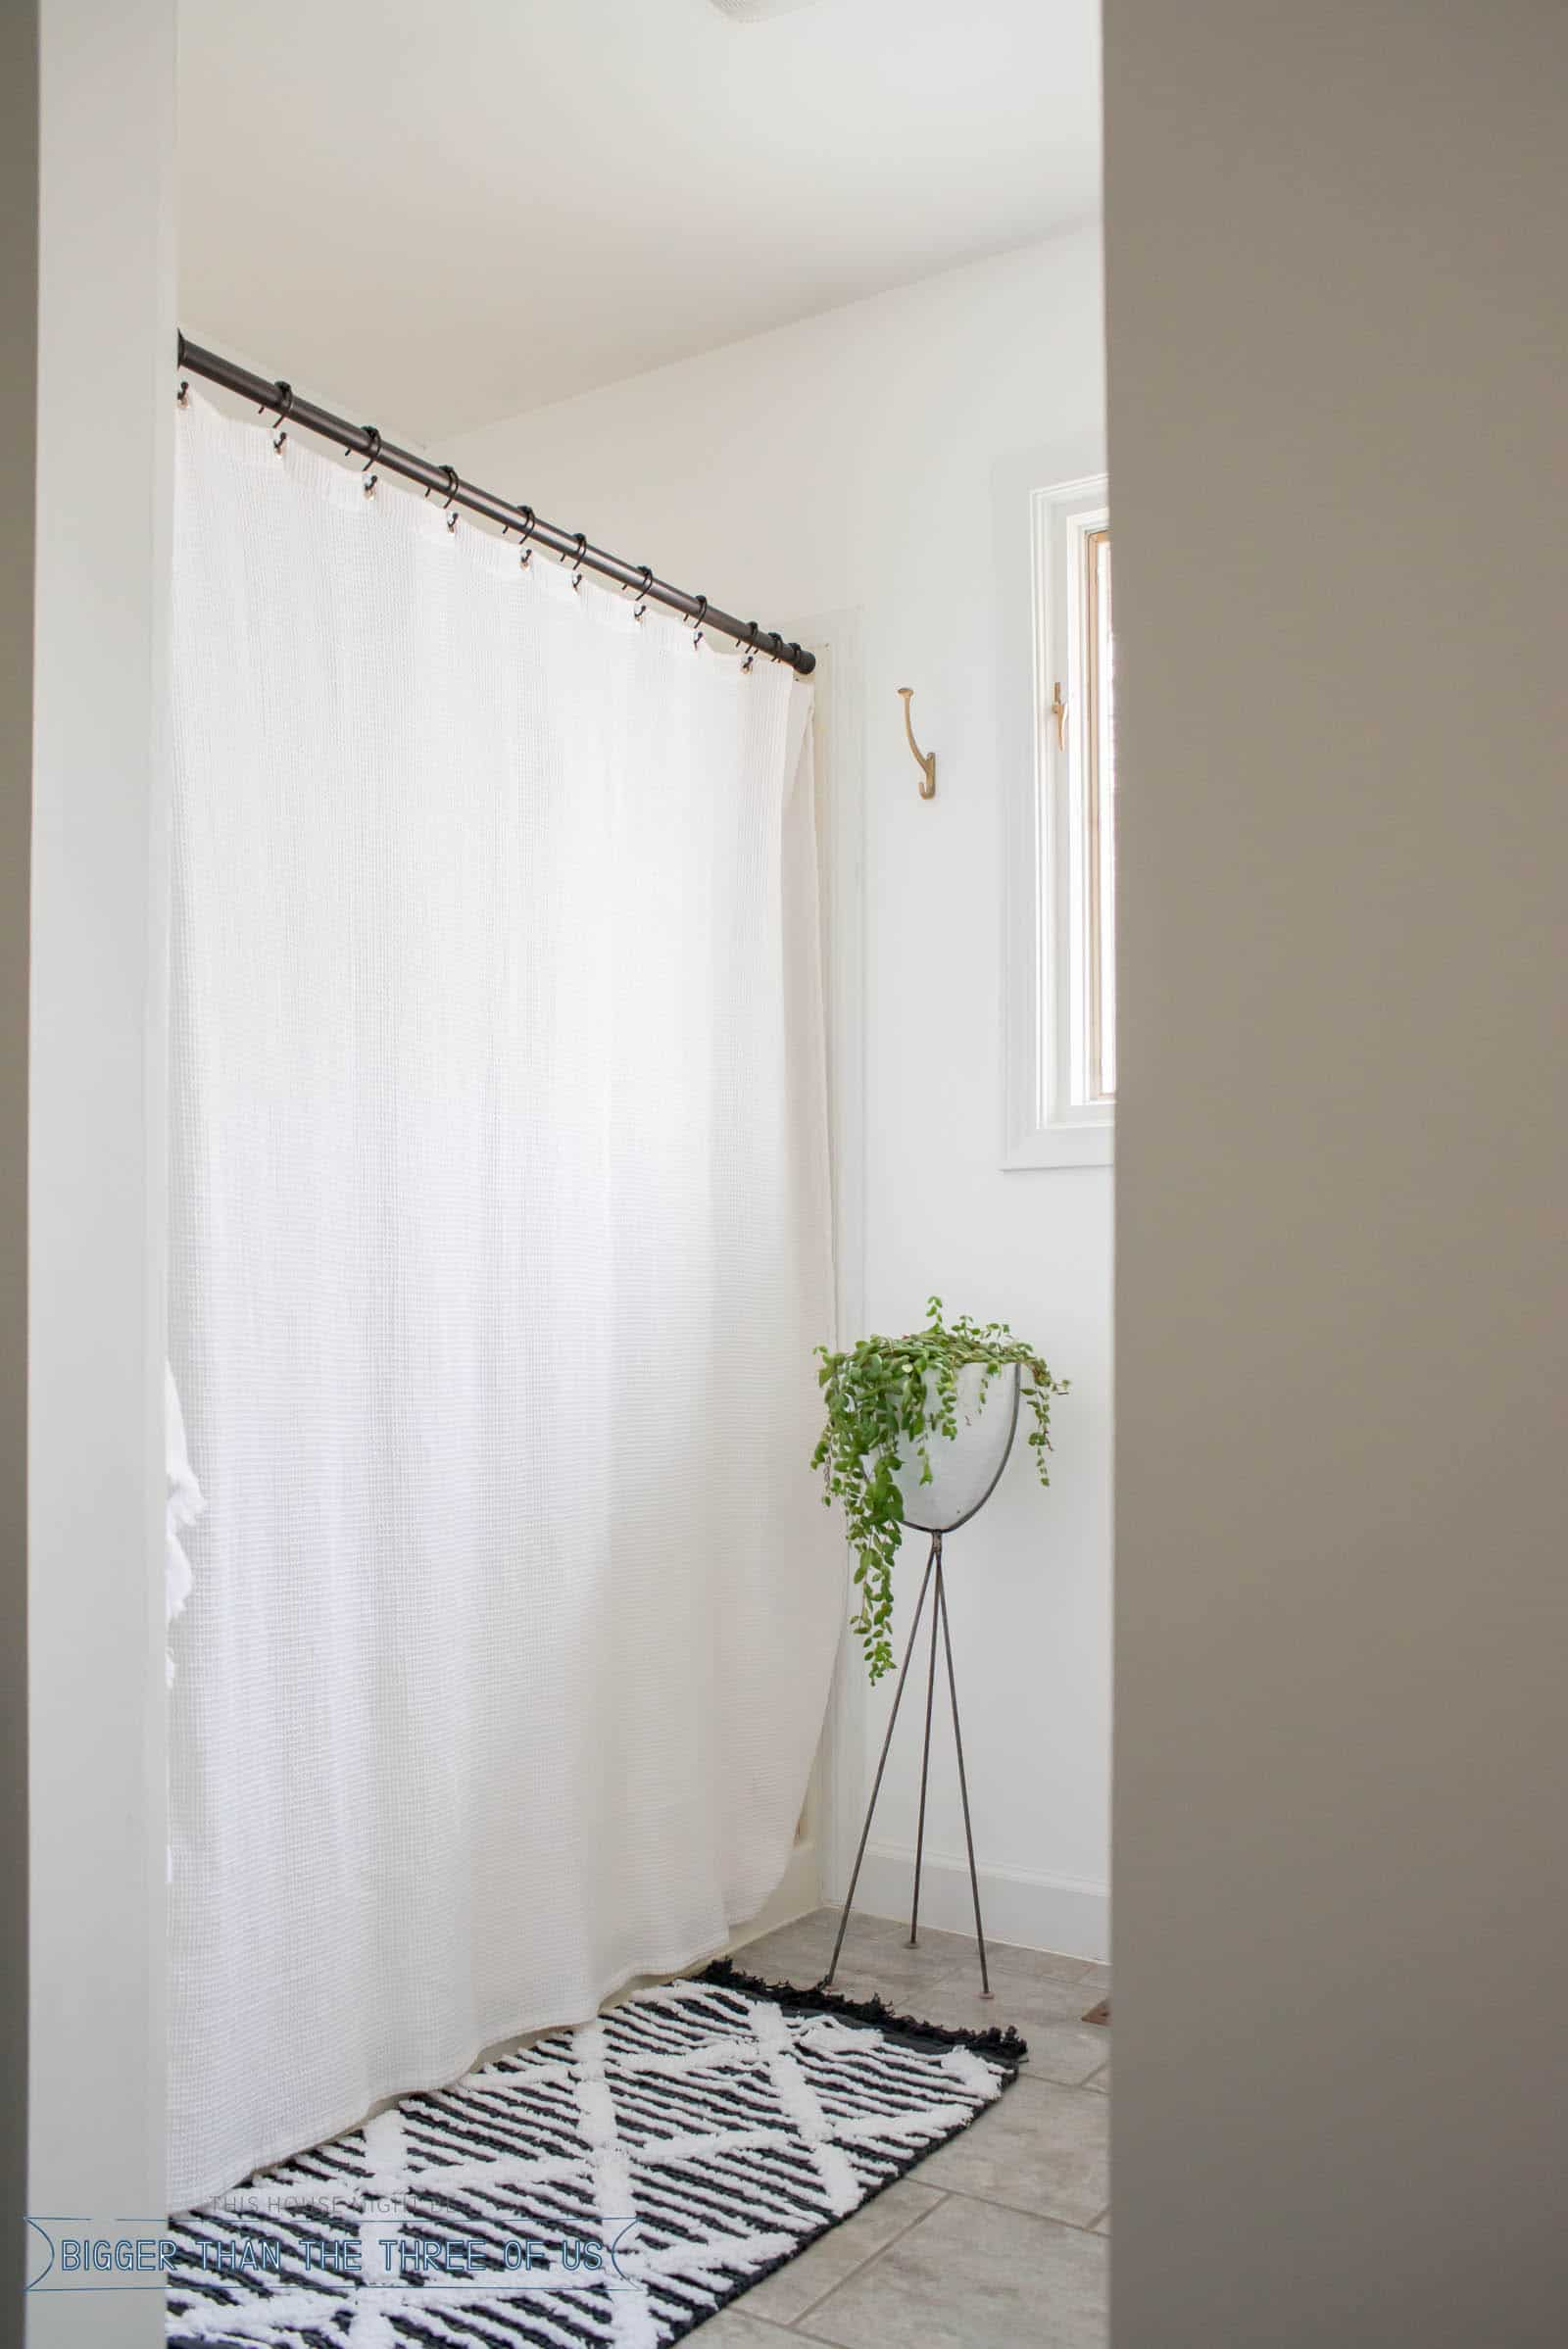 White Curtain in shower gives an airy vibe